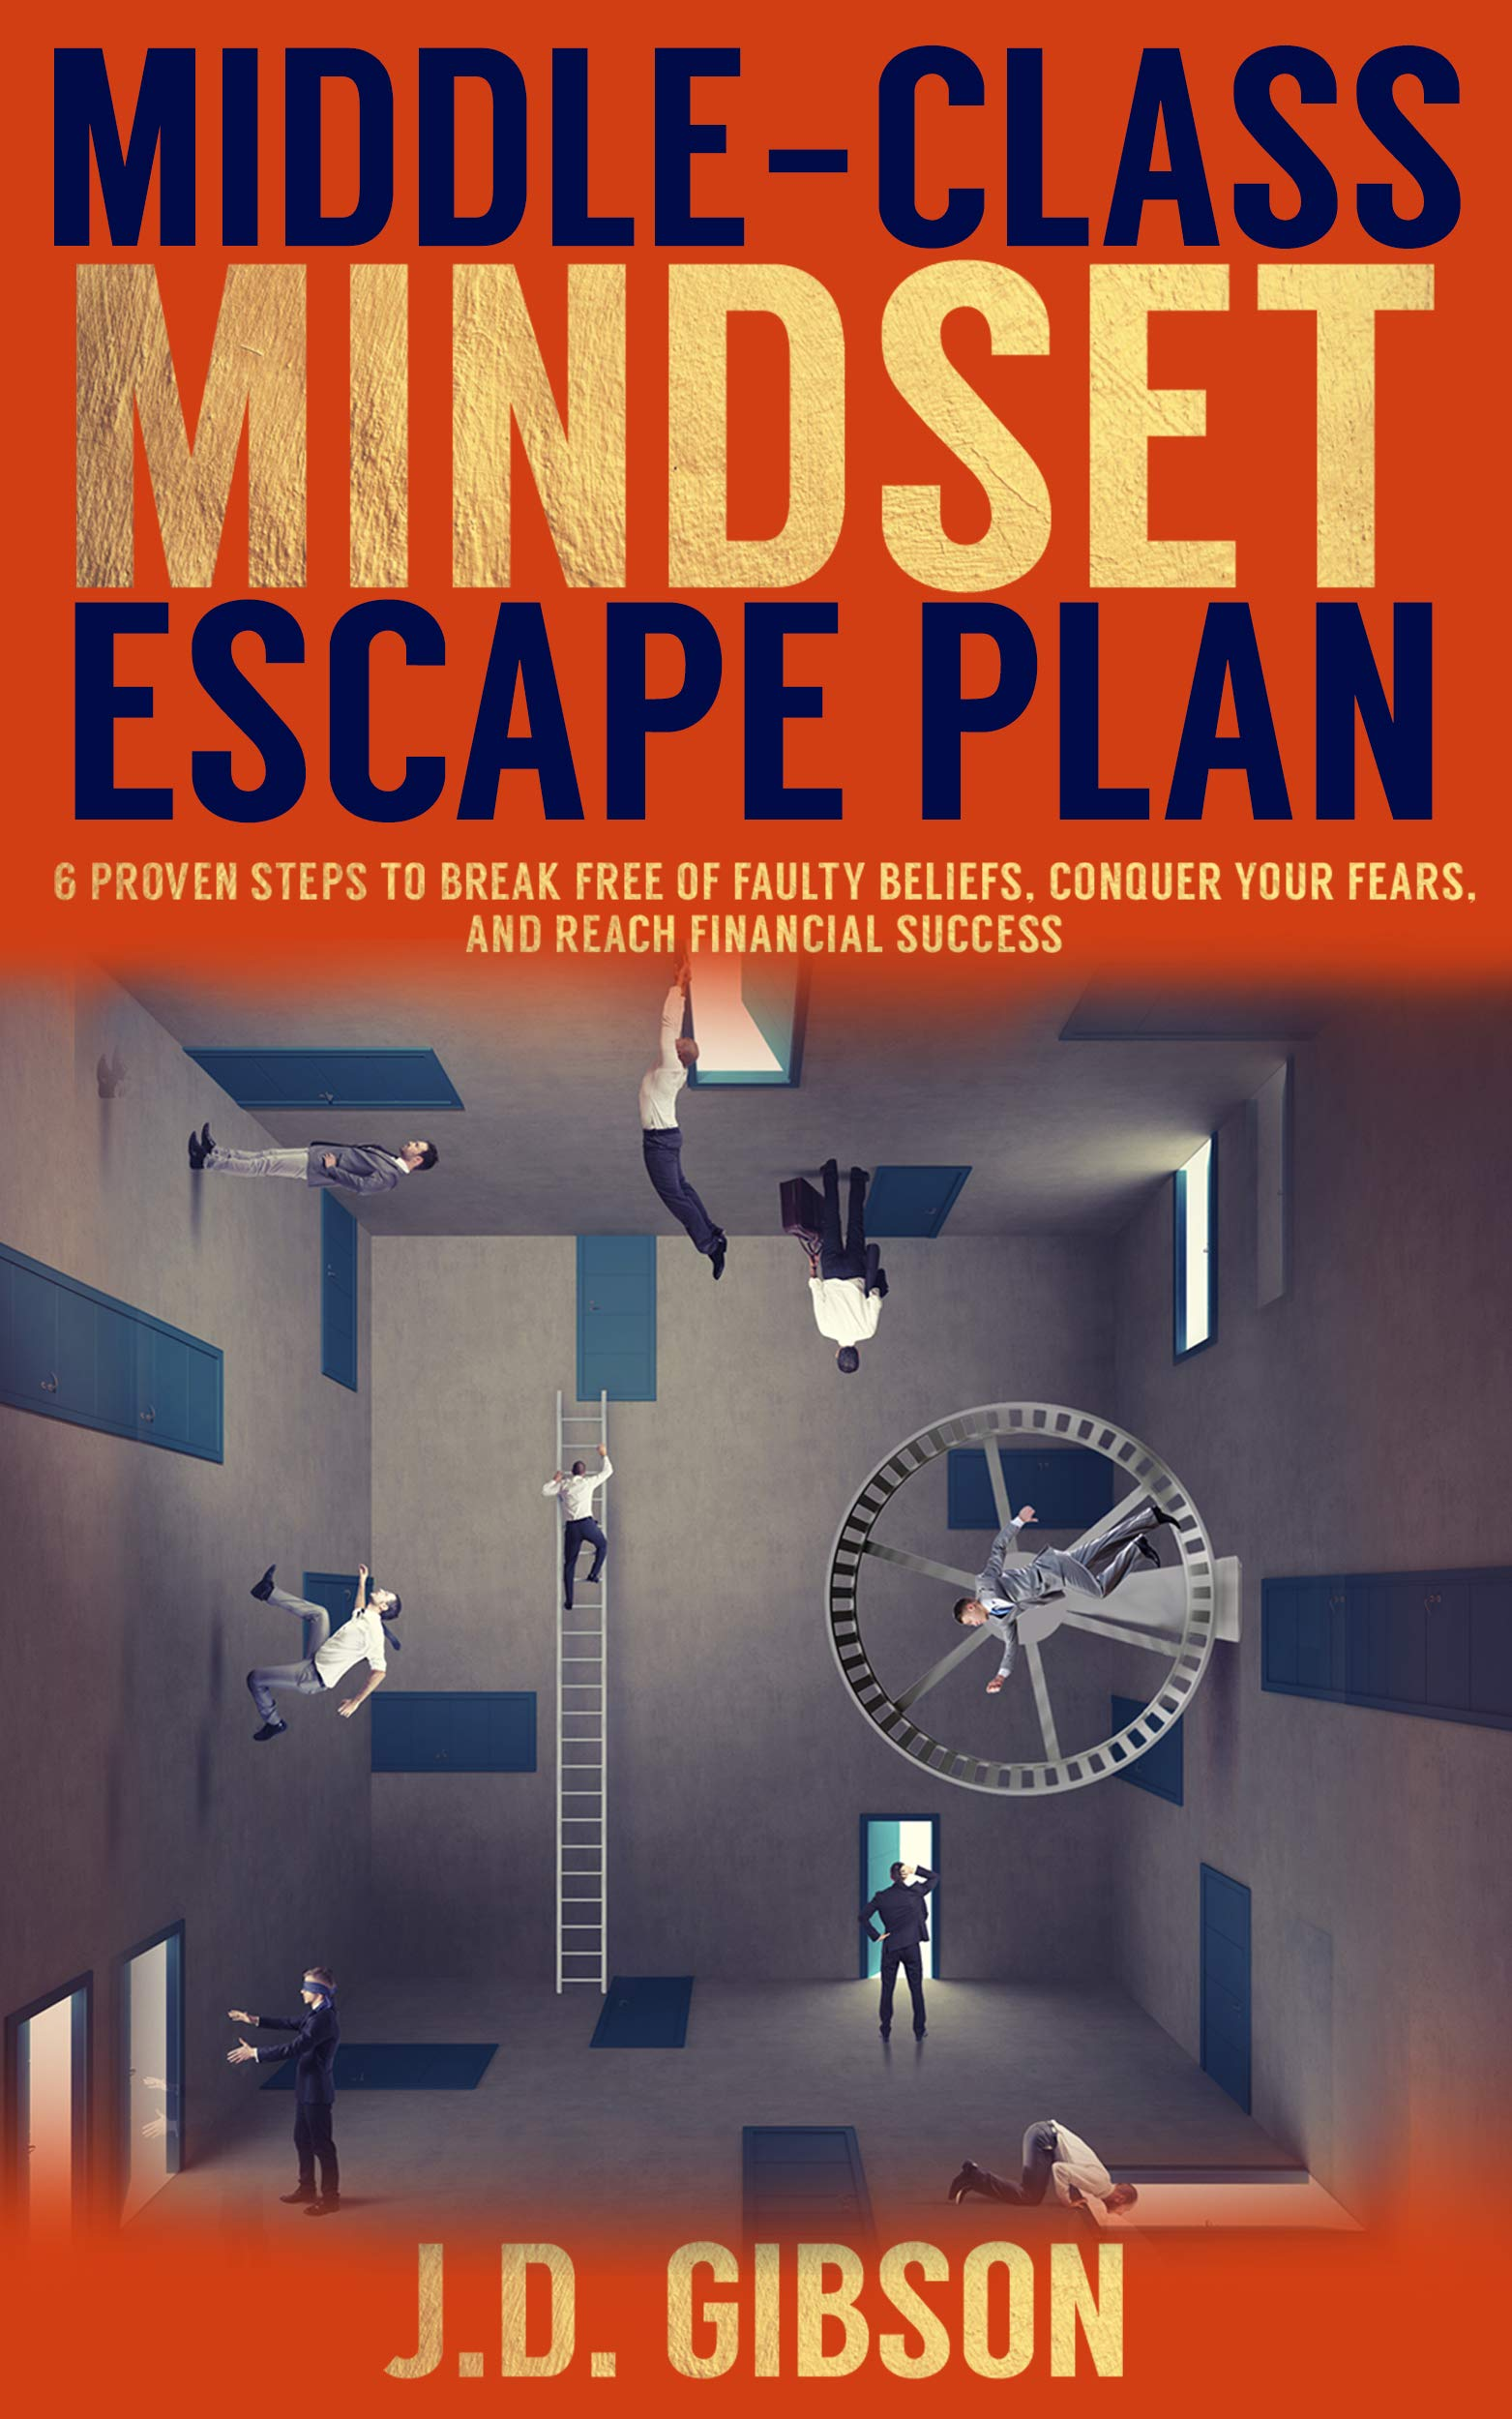 MIDDLE-CLASS MINDSET ESCAPE PLAN: 6 PROVEN STEPS TO BREAK FREE OF FAULTY BELIEFS, CONQUER YOUR FEARS, AND REACH FINANCIAL SUCCESS